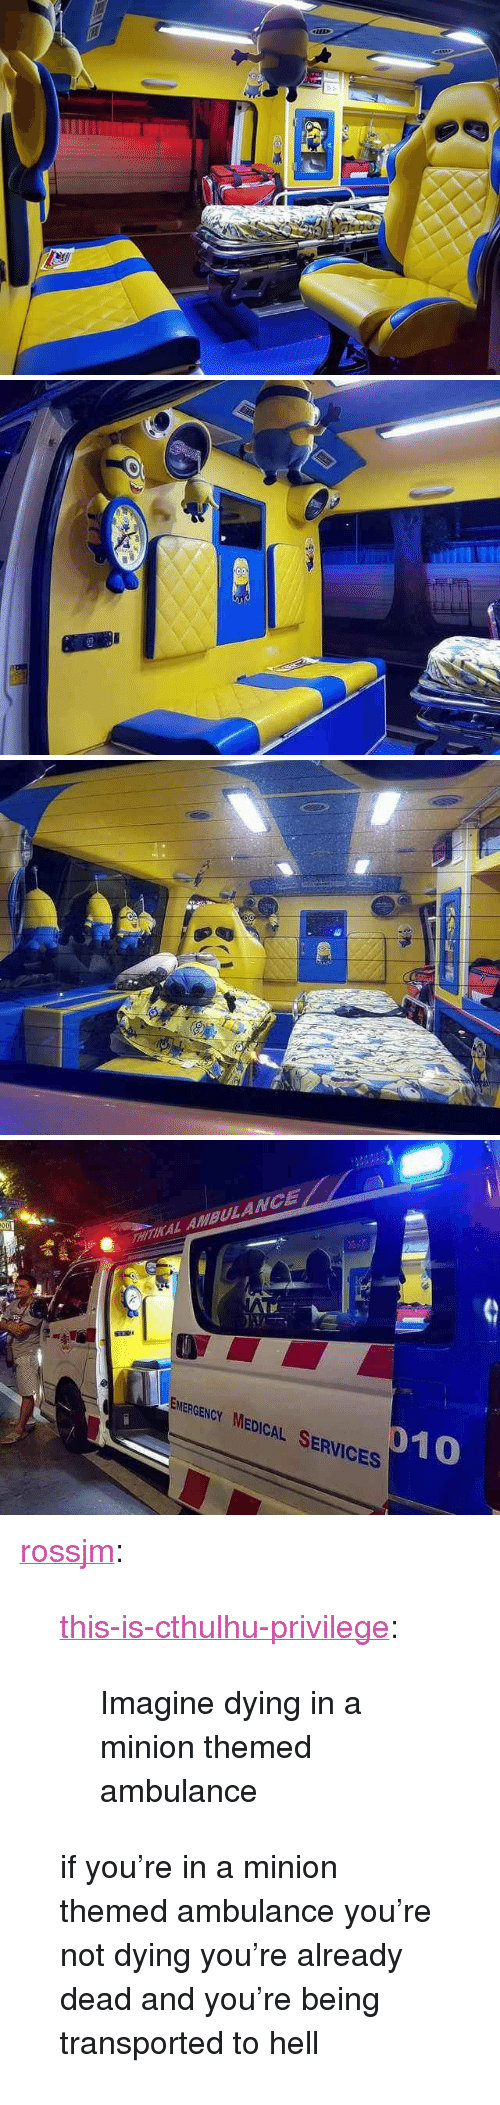 "a minion: AL AMBULANCE  EMERGENCY MEDICAL SERVICES  10 <p><a href=""http://rossjm.tumblr.com/post/174323269402"" class=""tumblr_blog"">rossjm</a>:</p>  <blockquote><p><a href=""http://this-is-cthulhu-privilege.tumblr.com/post/174321816117/imagine-dying-in-a-minion-themed-ambulance"" class=""tumblr_blog"">this-is-cthulhu-privilege</a>:</p><blockquote><p>Imagine dying in a minion themed ambulance</p></blockquote> <p>if you're in a minion themed ambulance you're not dying you're already dead and you're being transported to hell</p></blockquote>"